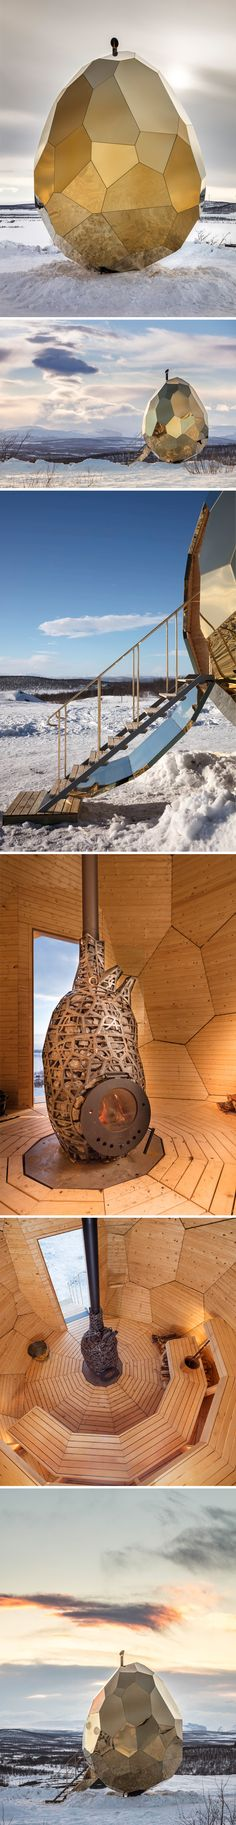 golden, solar, egg-shaped sauna in sweden by bigert & bergstrom